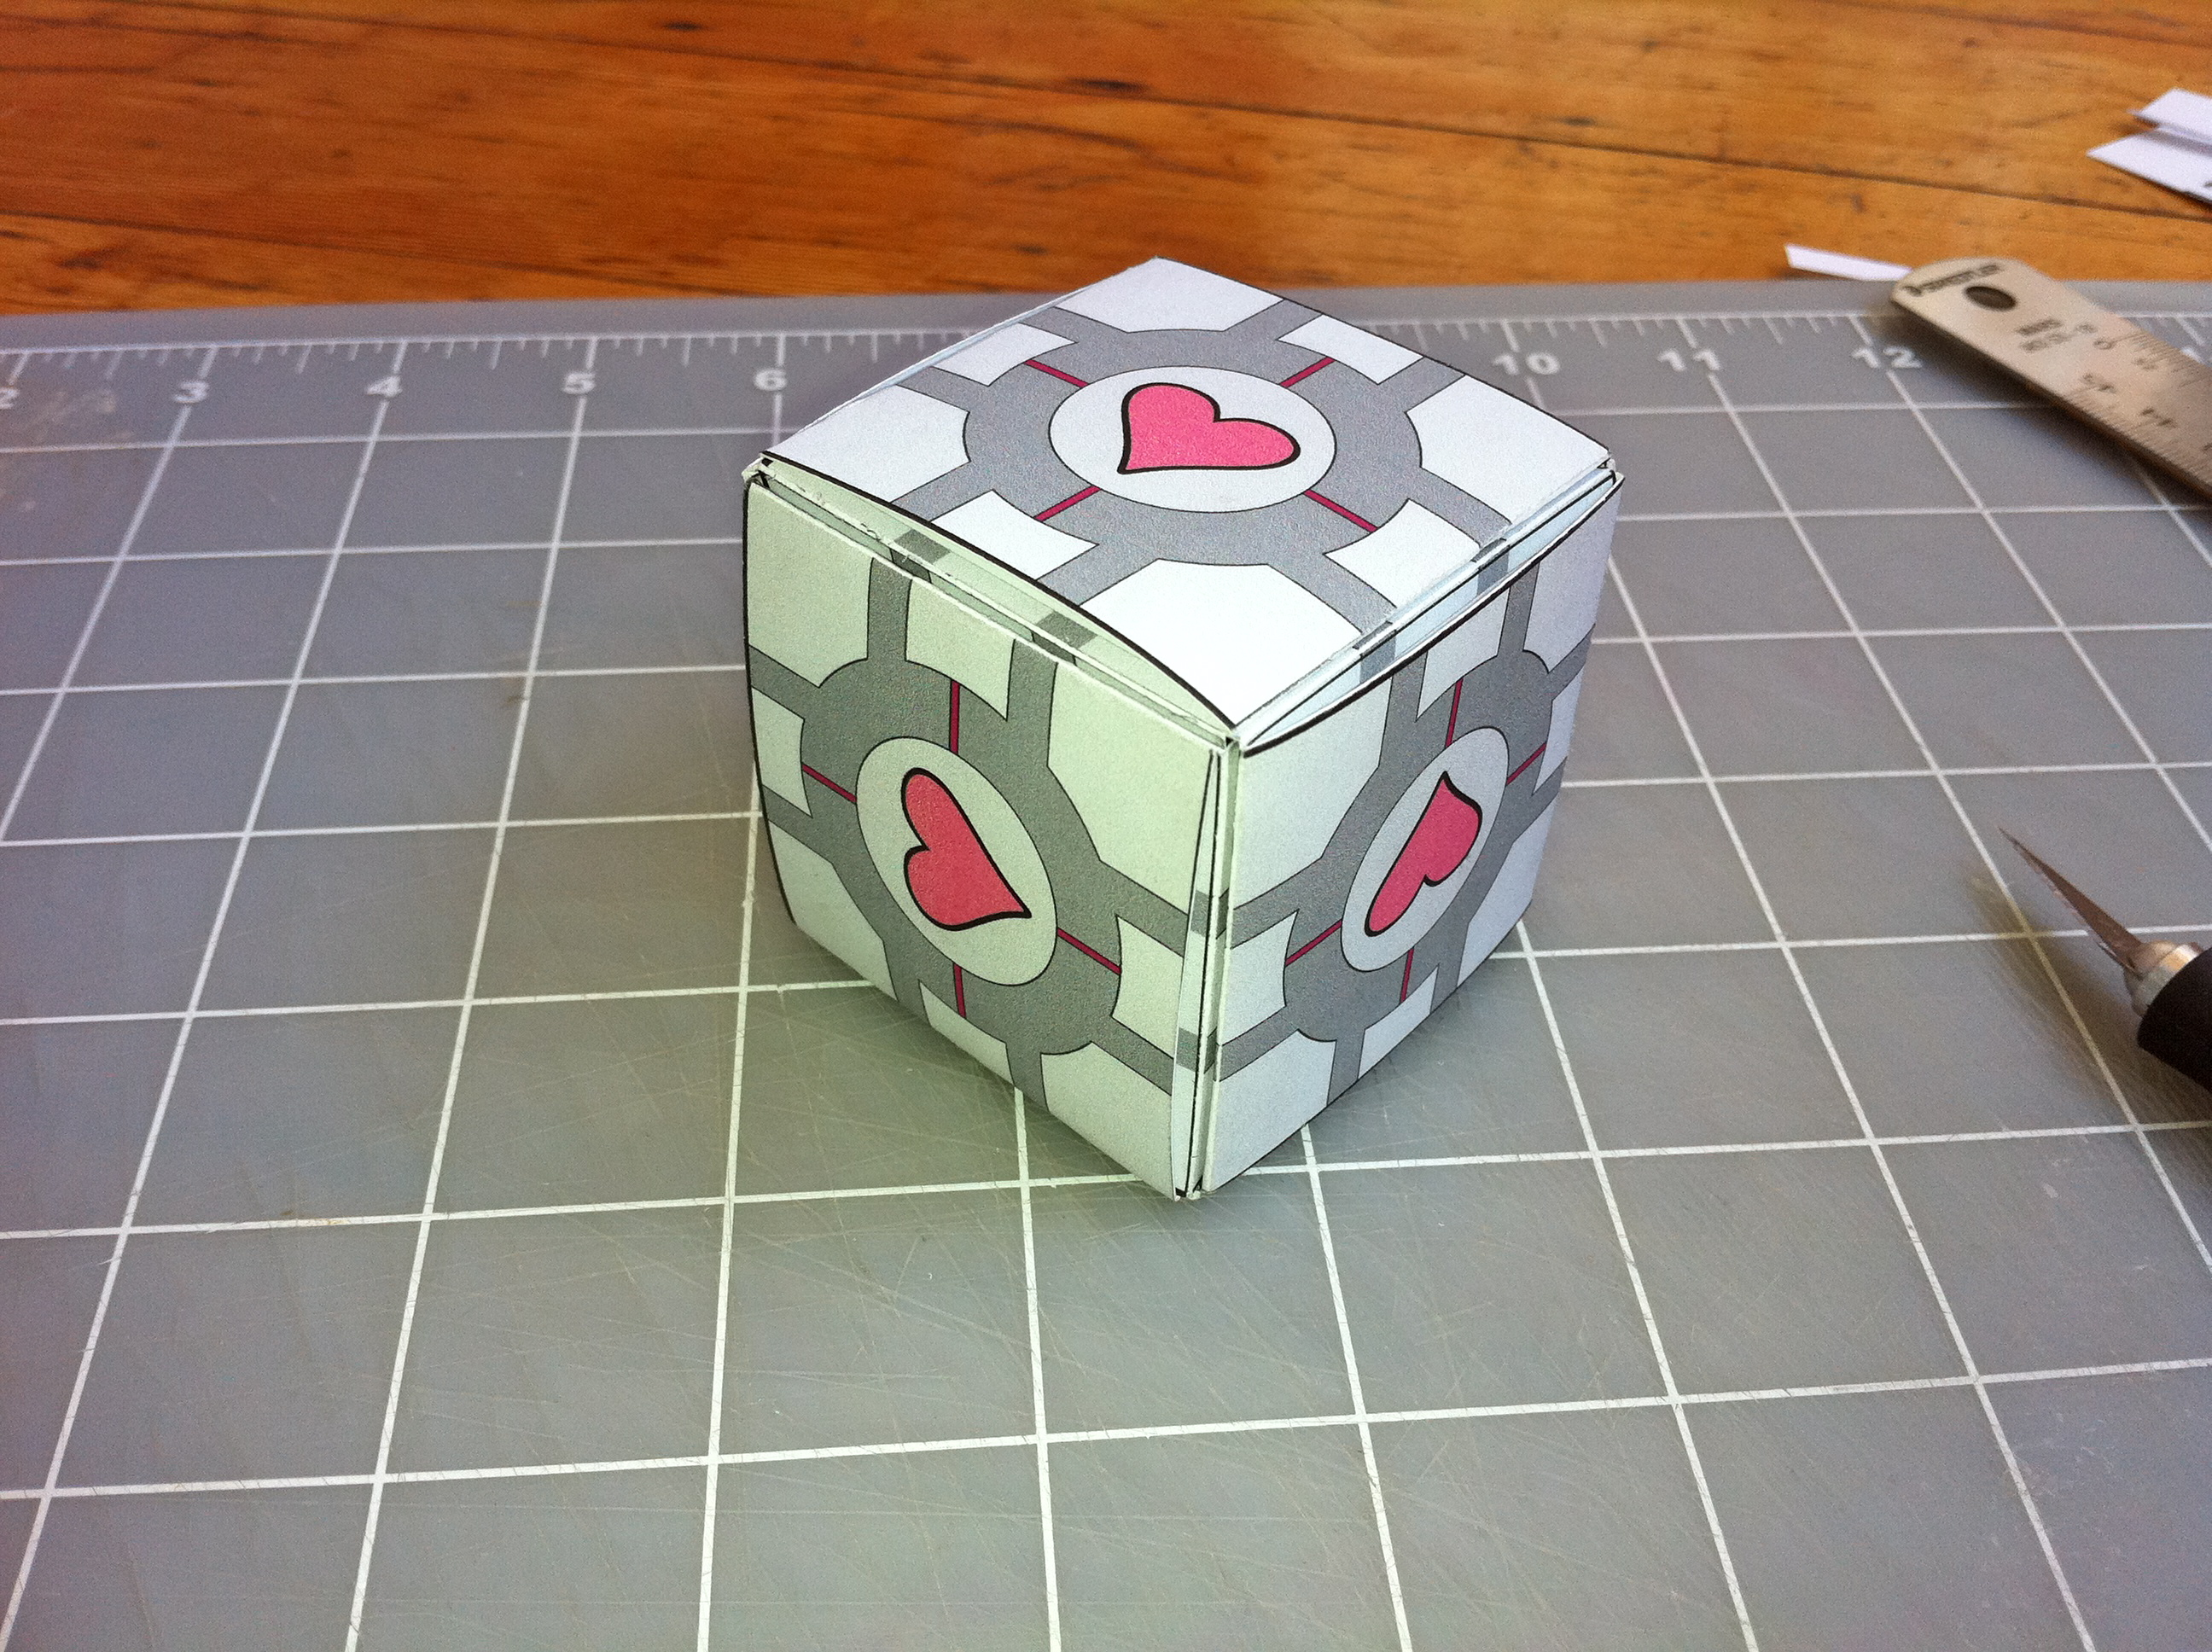 The business card companion cube